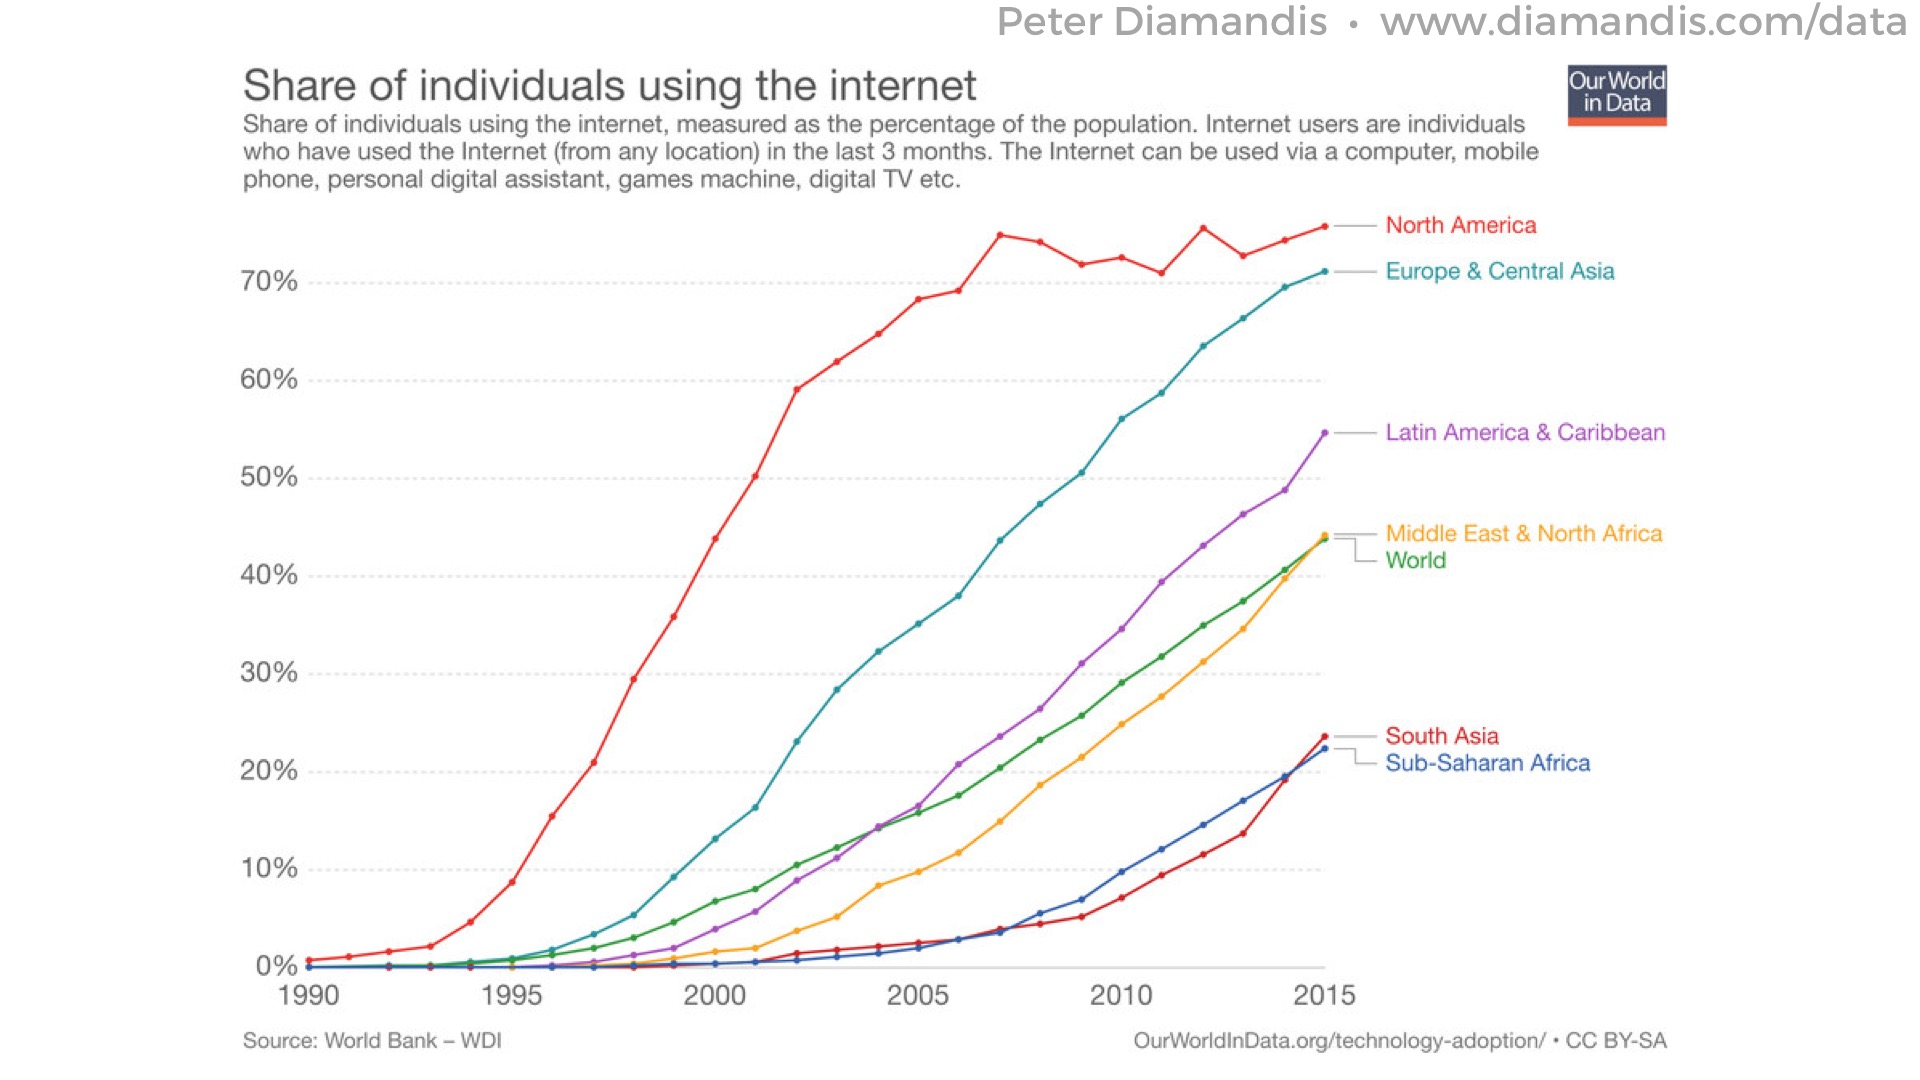 22%20Access%20to%20the%20internet%20is%20increasing